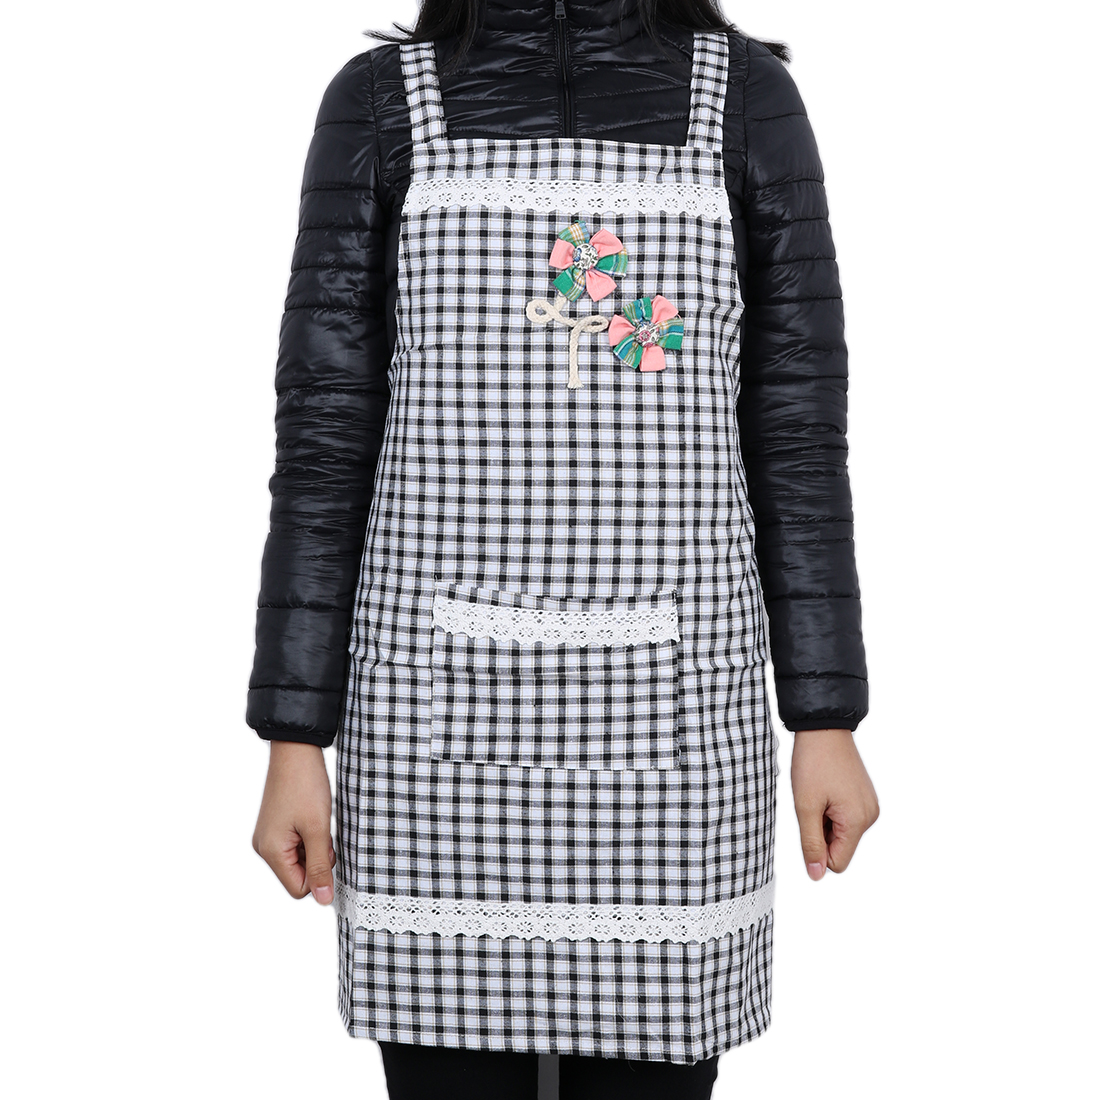 Grid Chefs Butchers Kitchen Craft Bib Apron for Women Deep Black